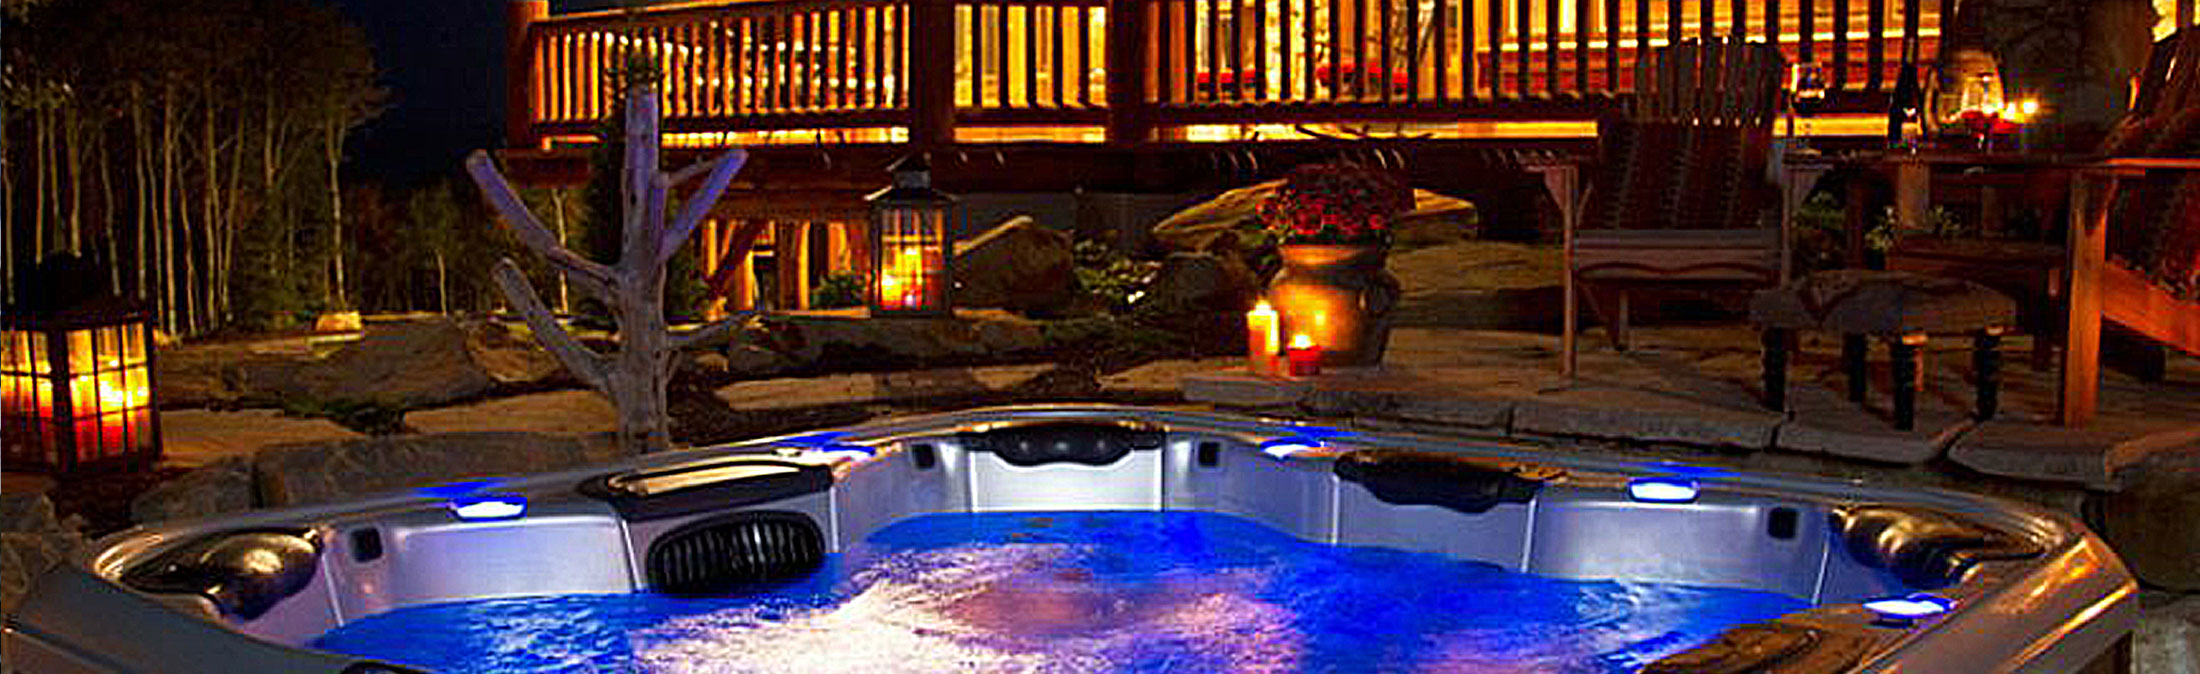 Paradise Pool and Spa J300 Hot Tub Collection